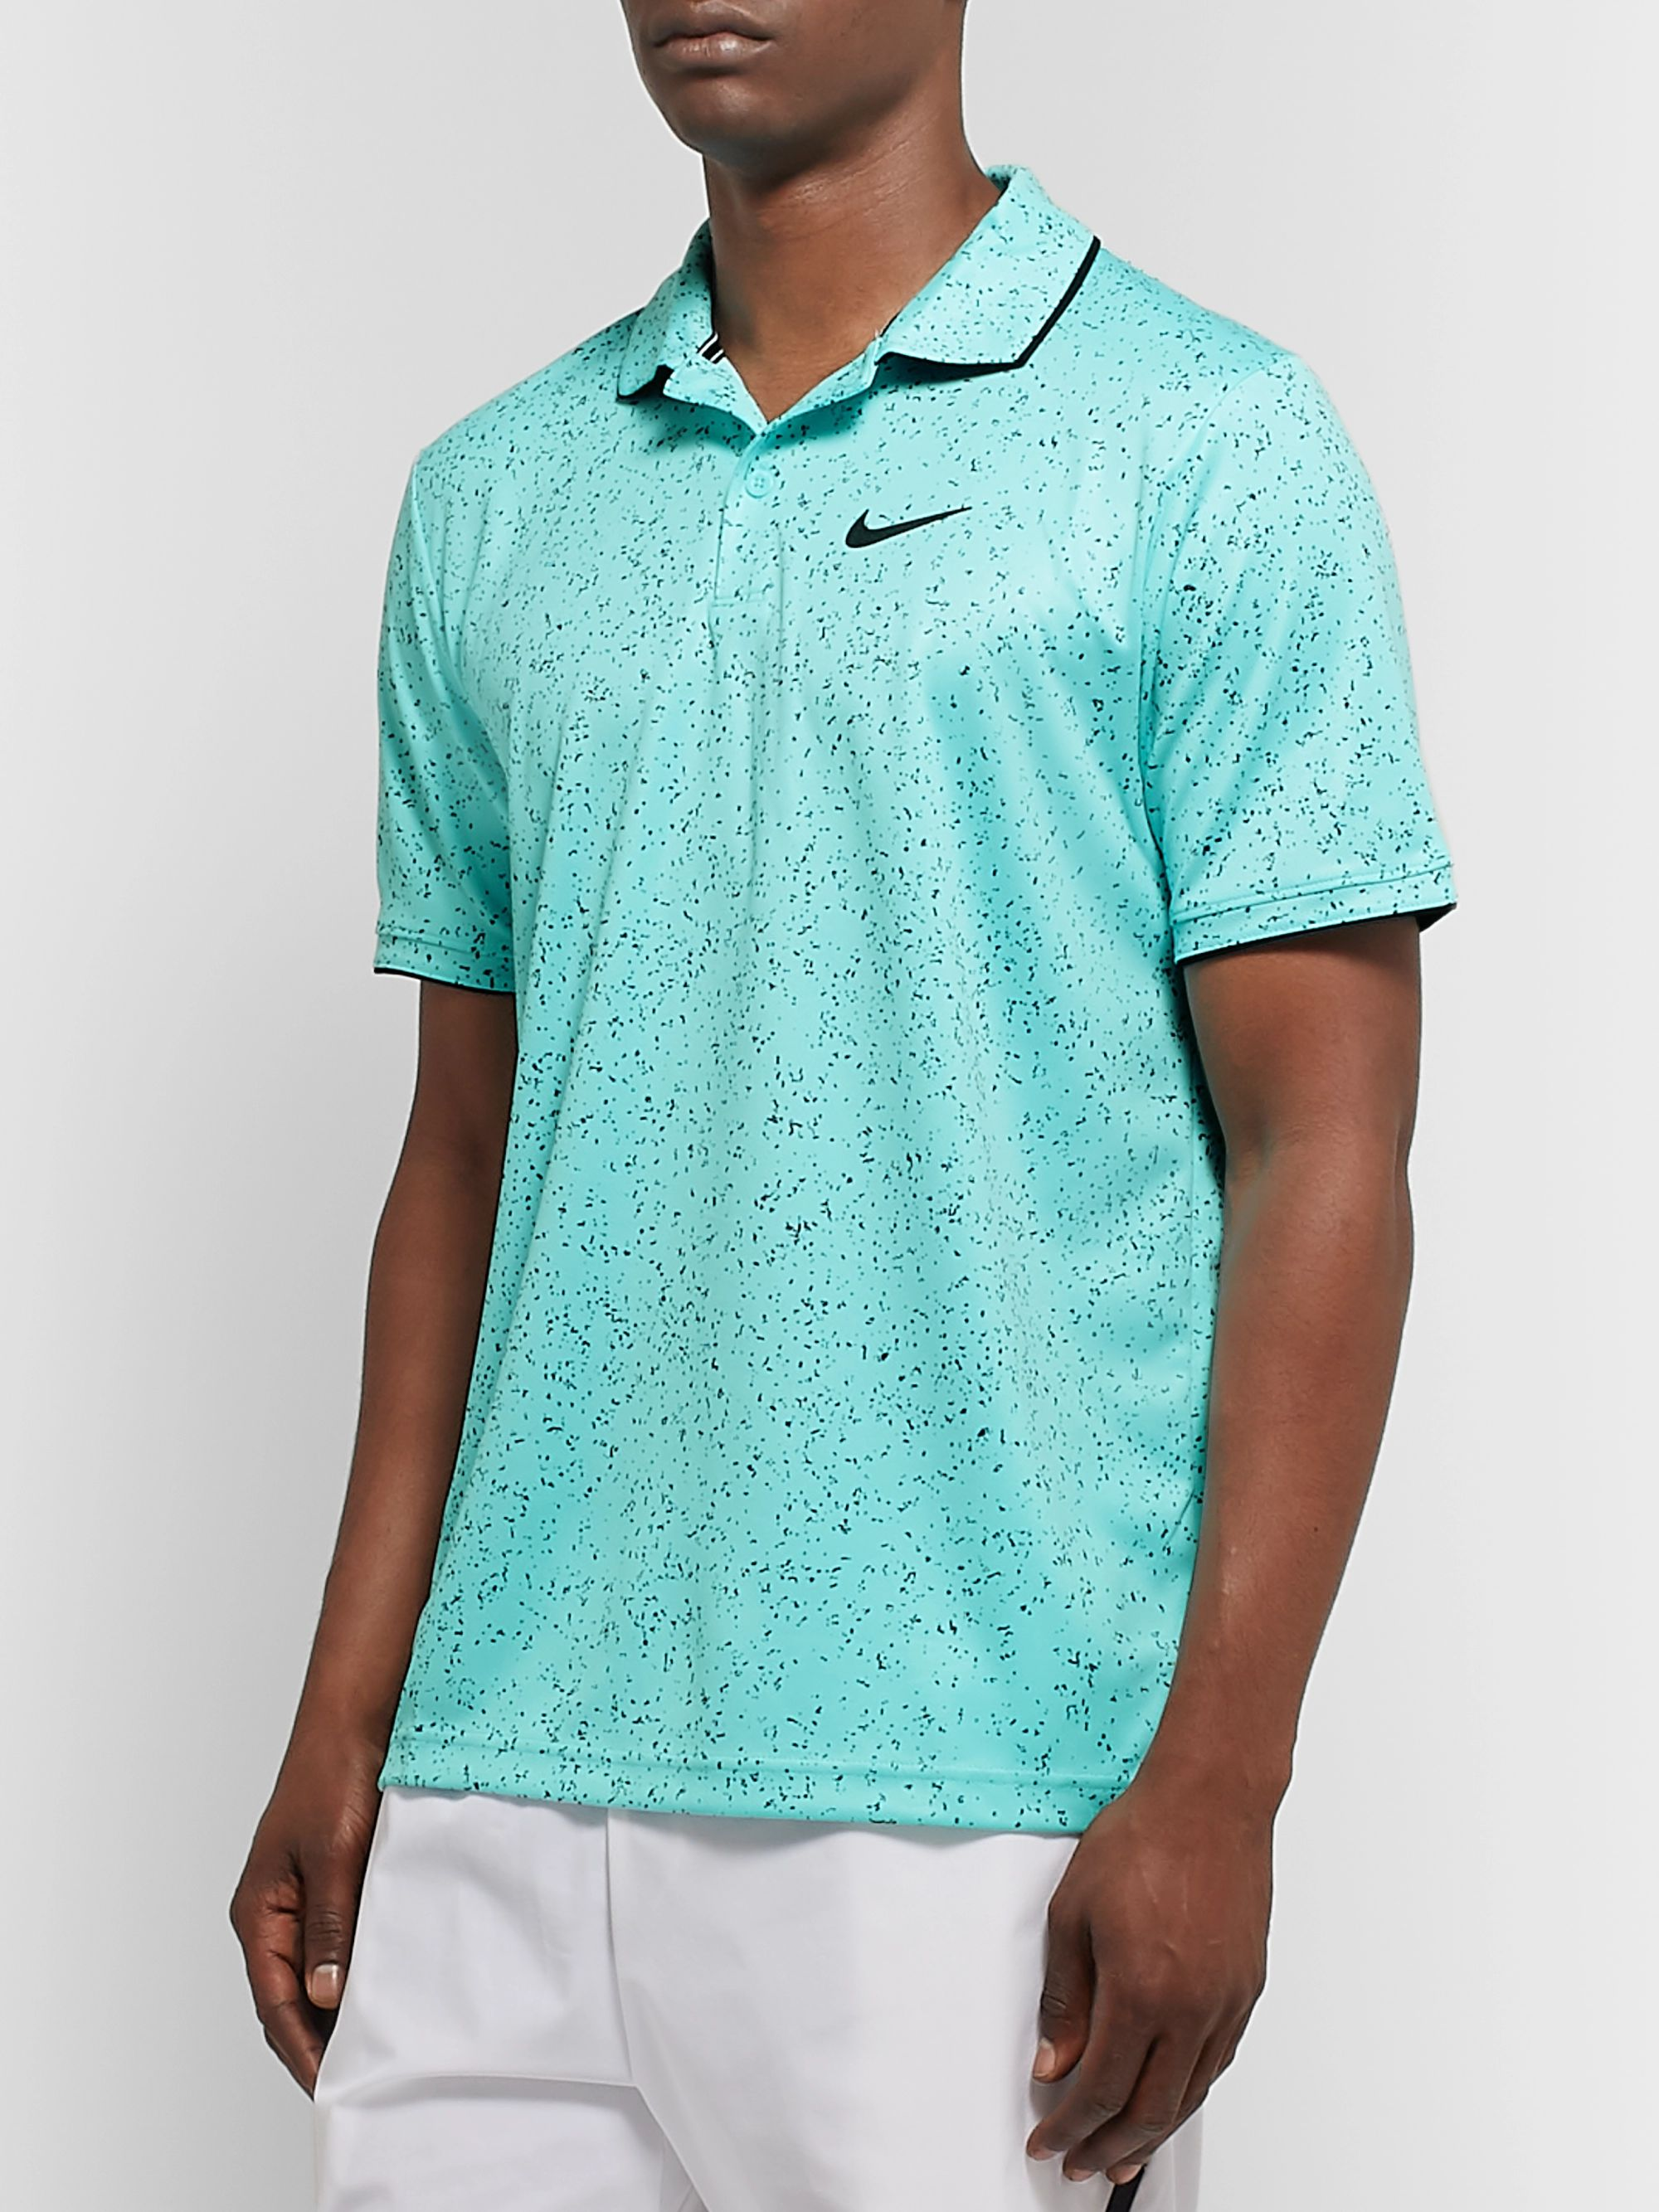 Nike Tennis NikeCourt Contrast-Tipped Printed Dri-FIT Tennis Polo Shirt